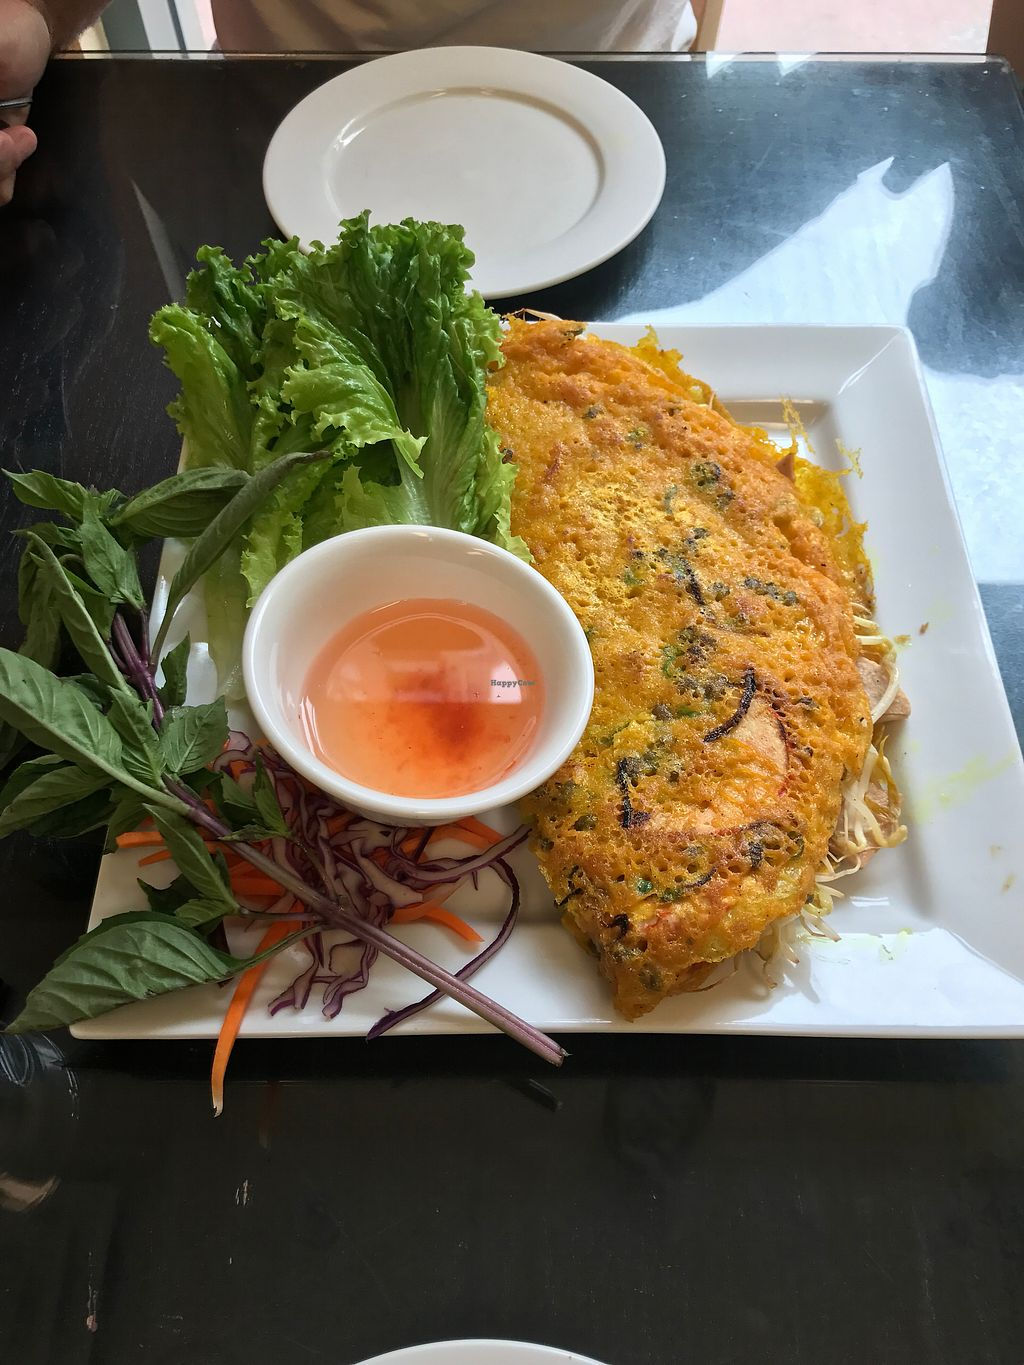 "Photo of Tamarind Vietnamese Grill and Noodle House  by <a href=""/members/profile/perkonius"">perkonius</a> <br/>Vietnamese sizzling crepe <br/> September 9, 2017  - <a href='/contact/abuse/image/49030/302316'>Report</a>"